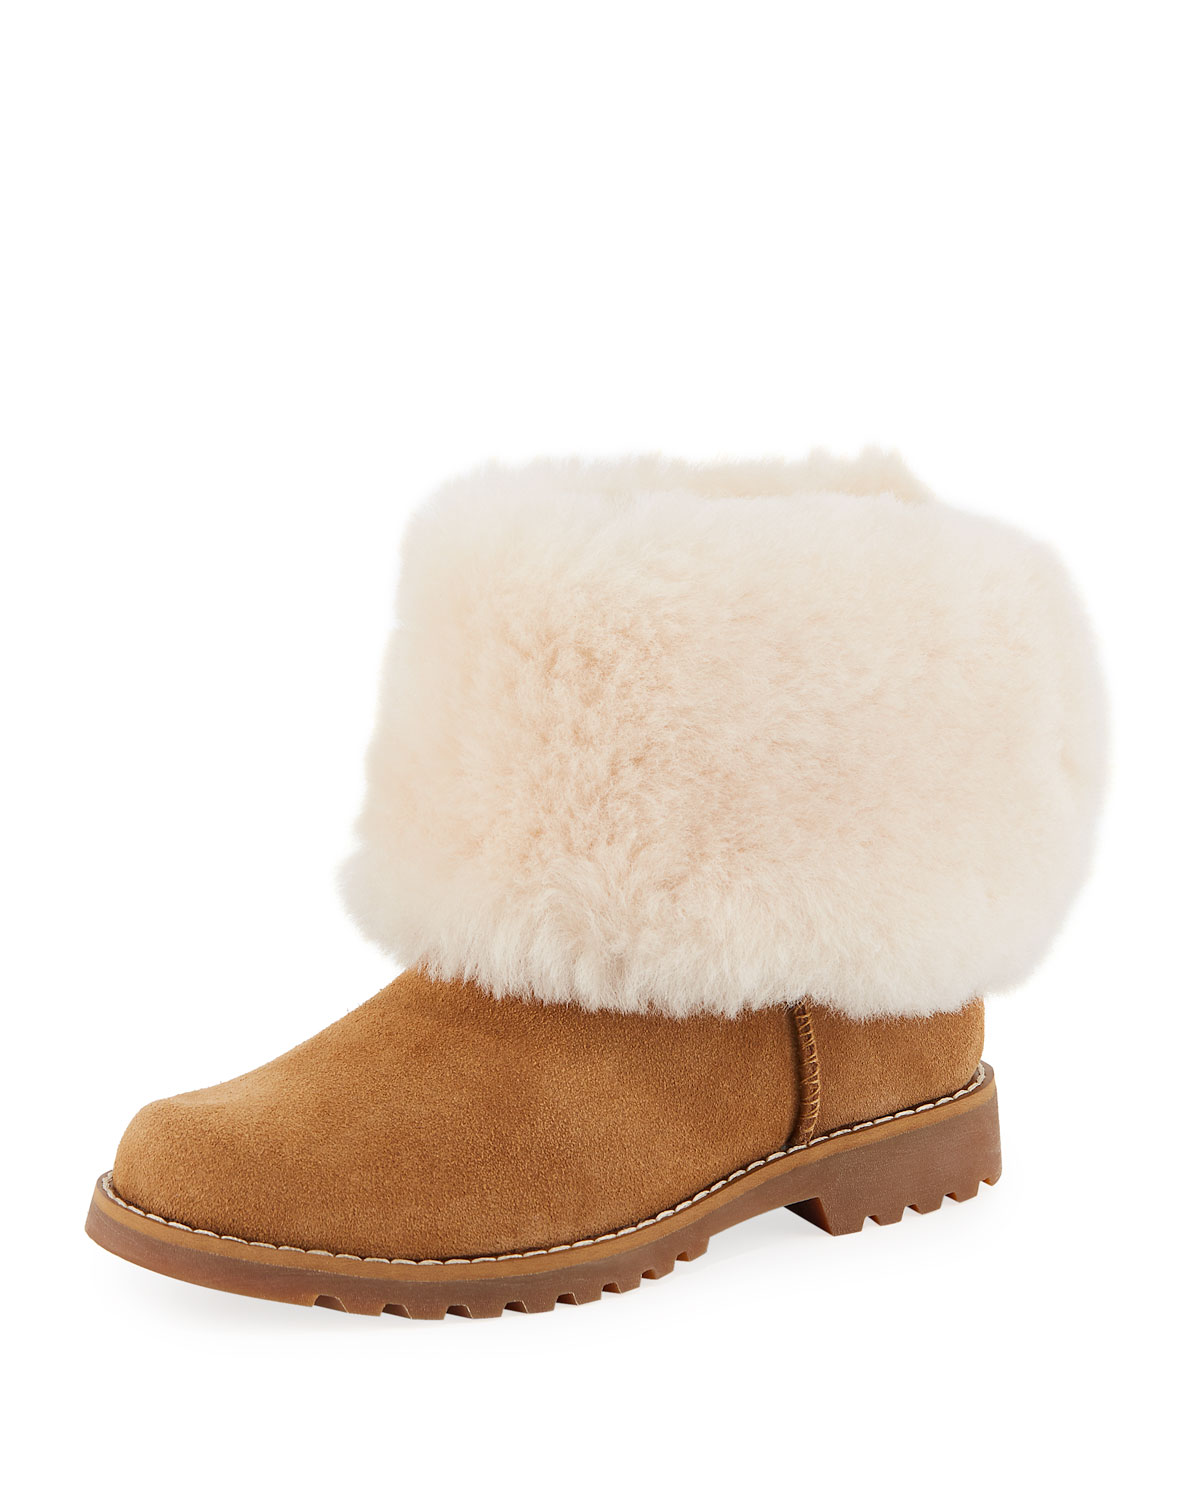 Nessa Suede Boots w Exposed Sheepskin Shaft Kids